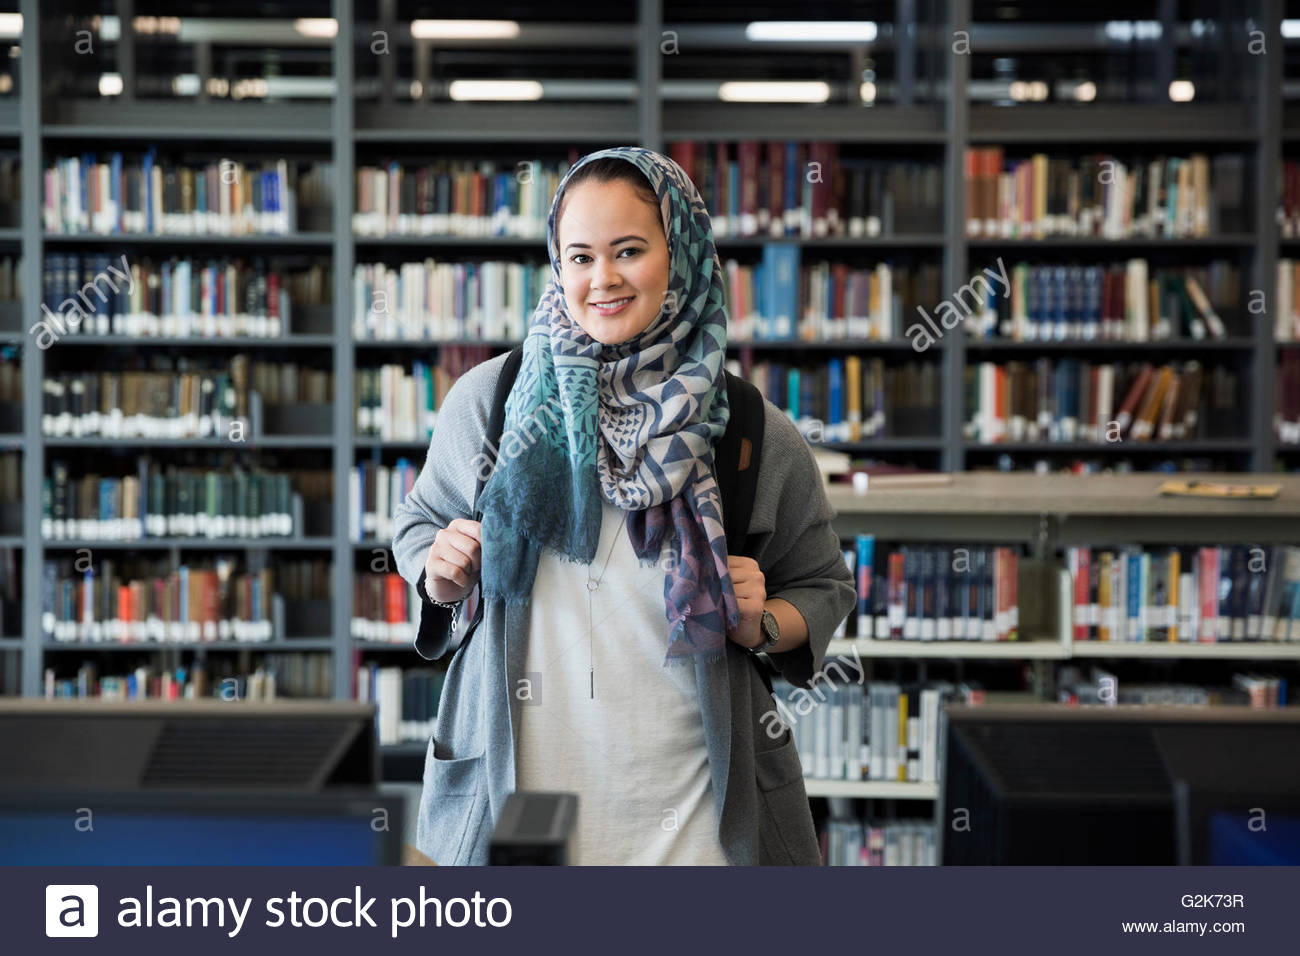 Portrait of smiling college student wearing hijab in library Photo Stock